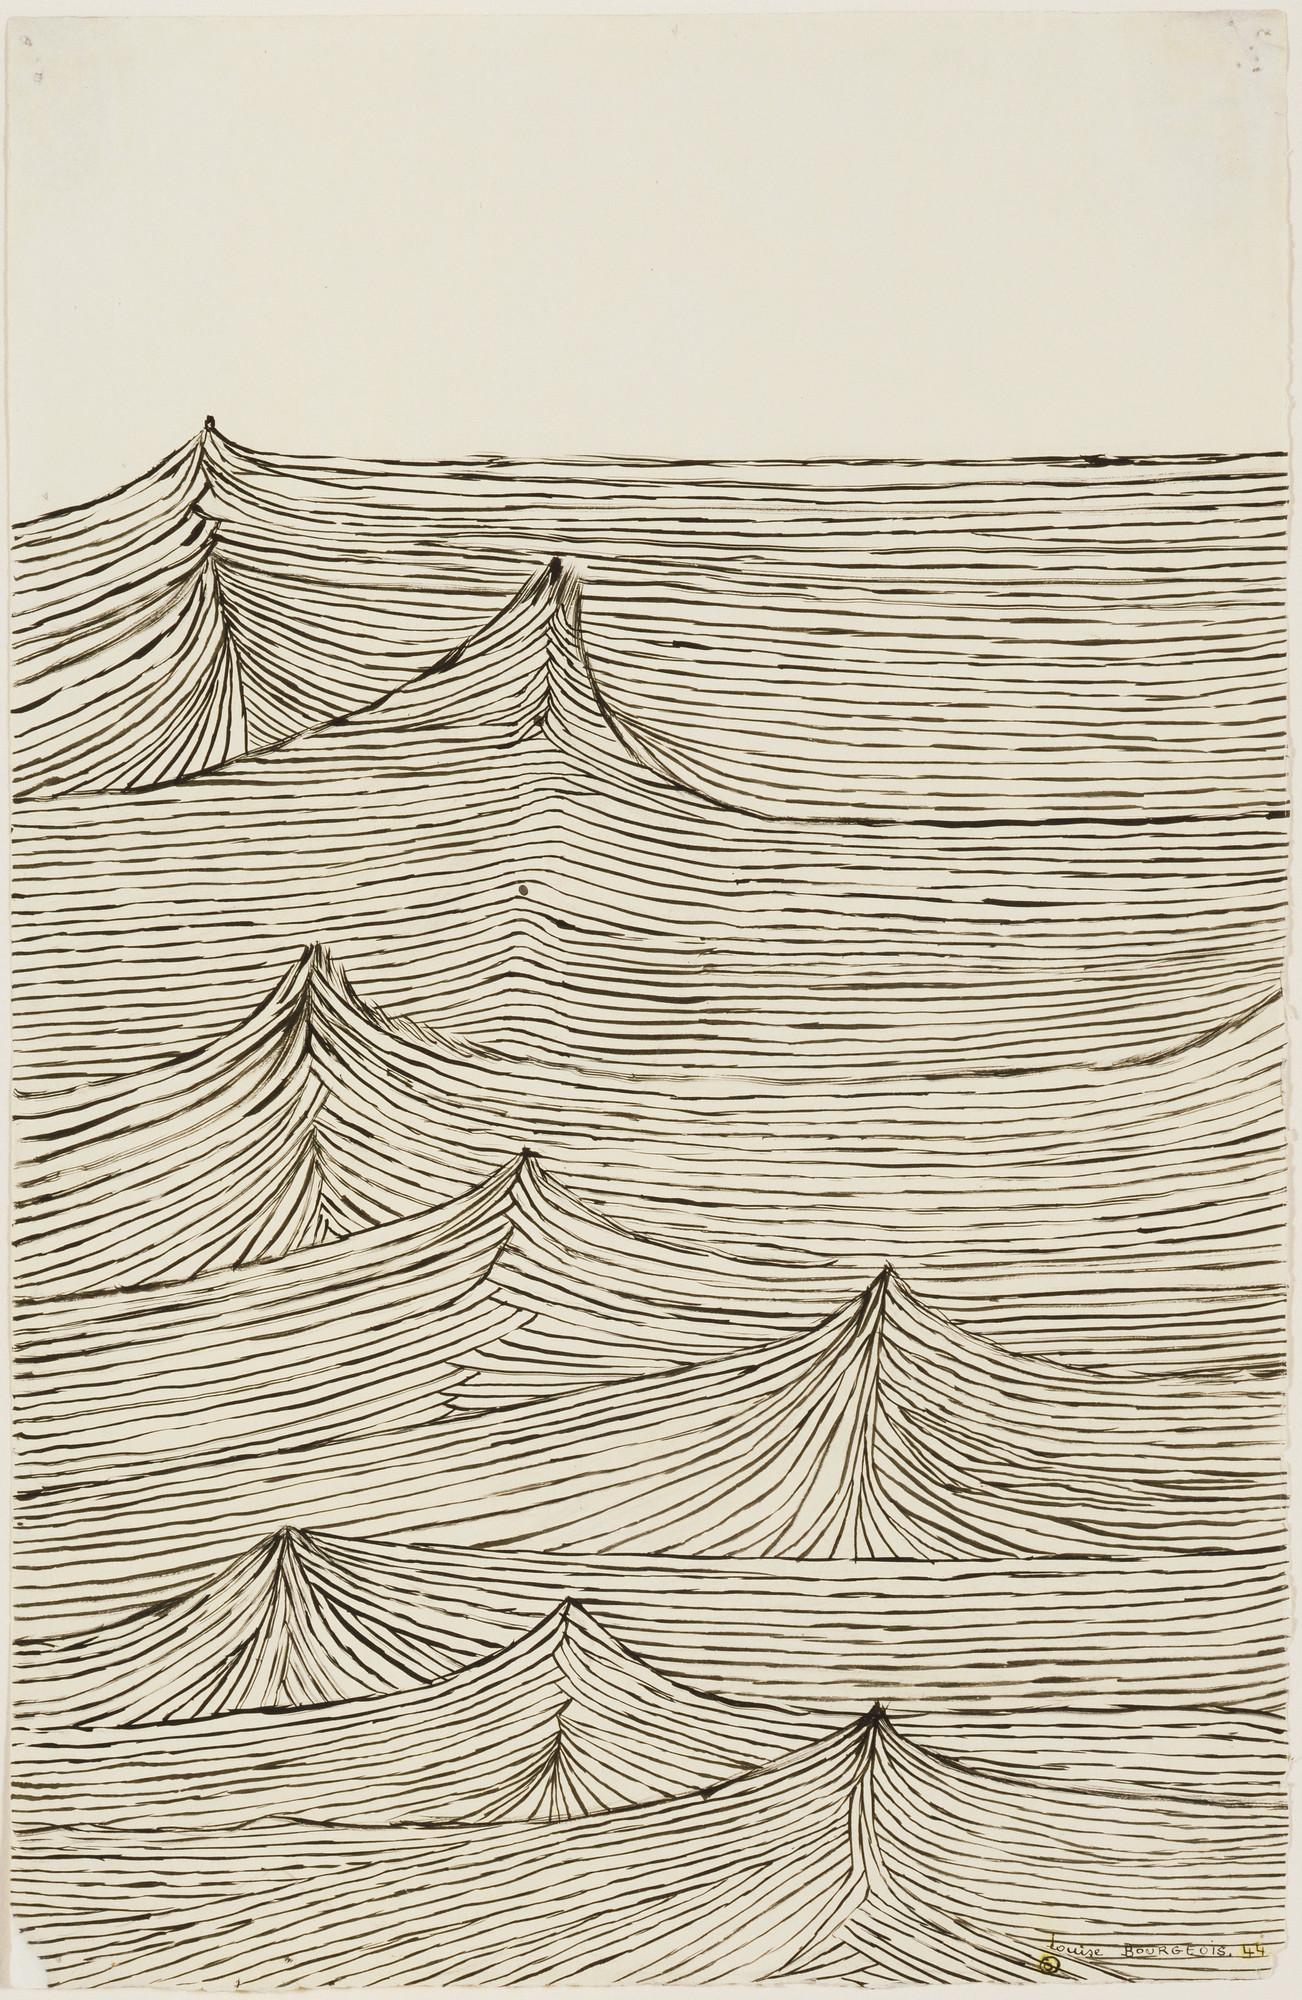 Louise Bourgeois. Throbbing Pulse. 1944